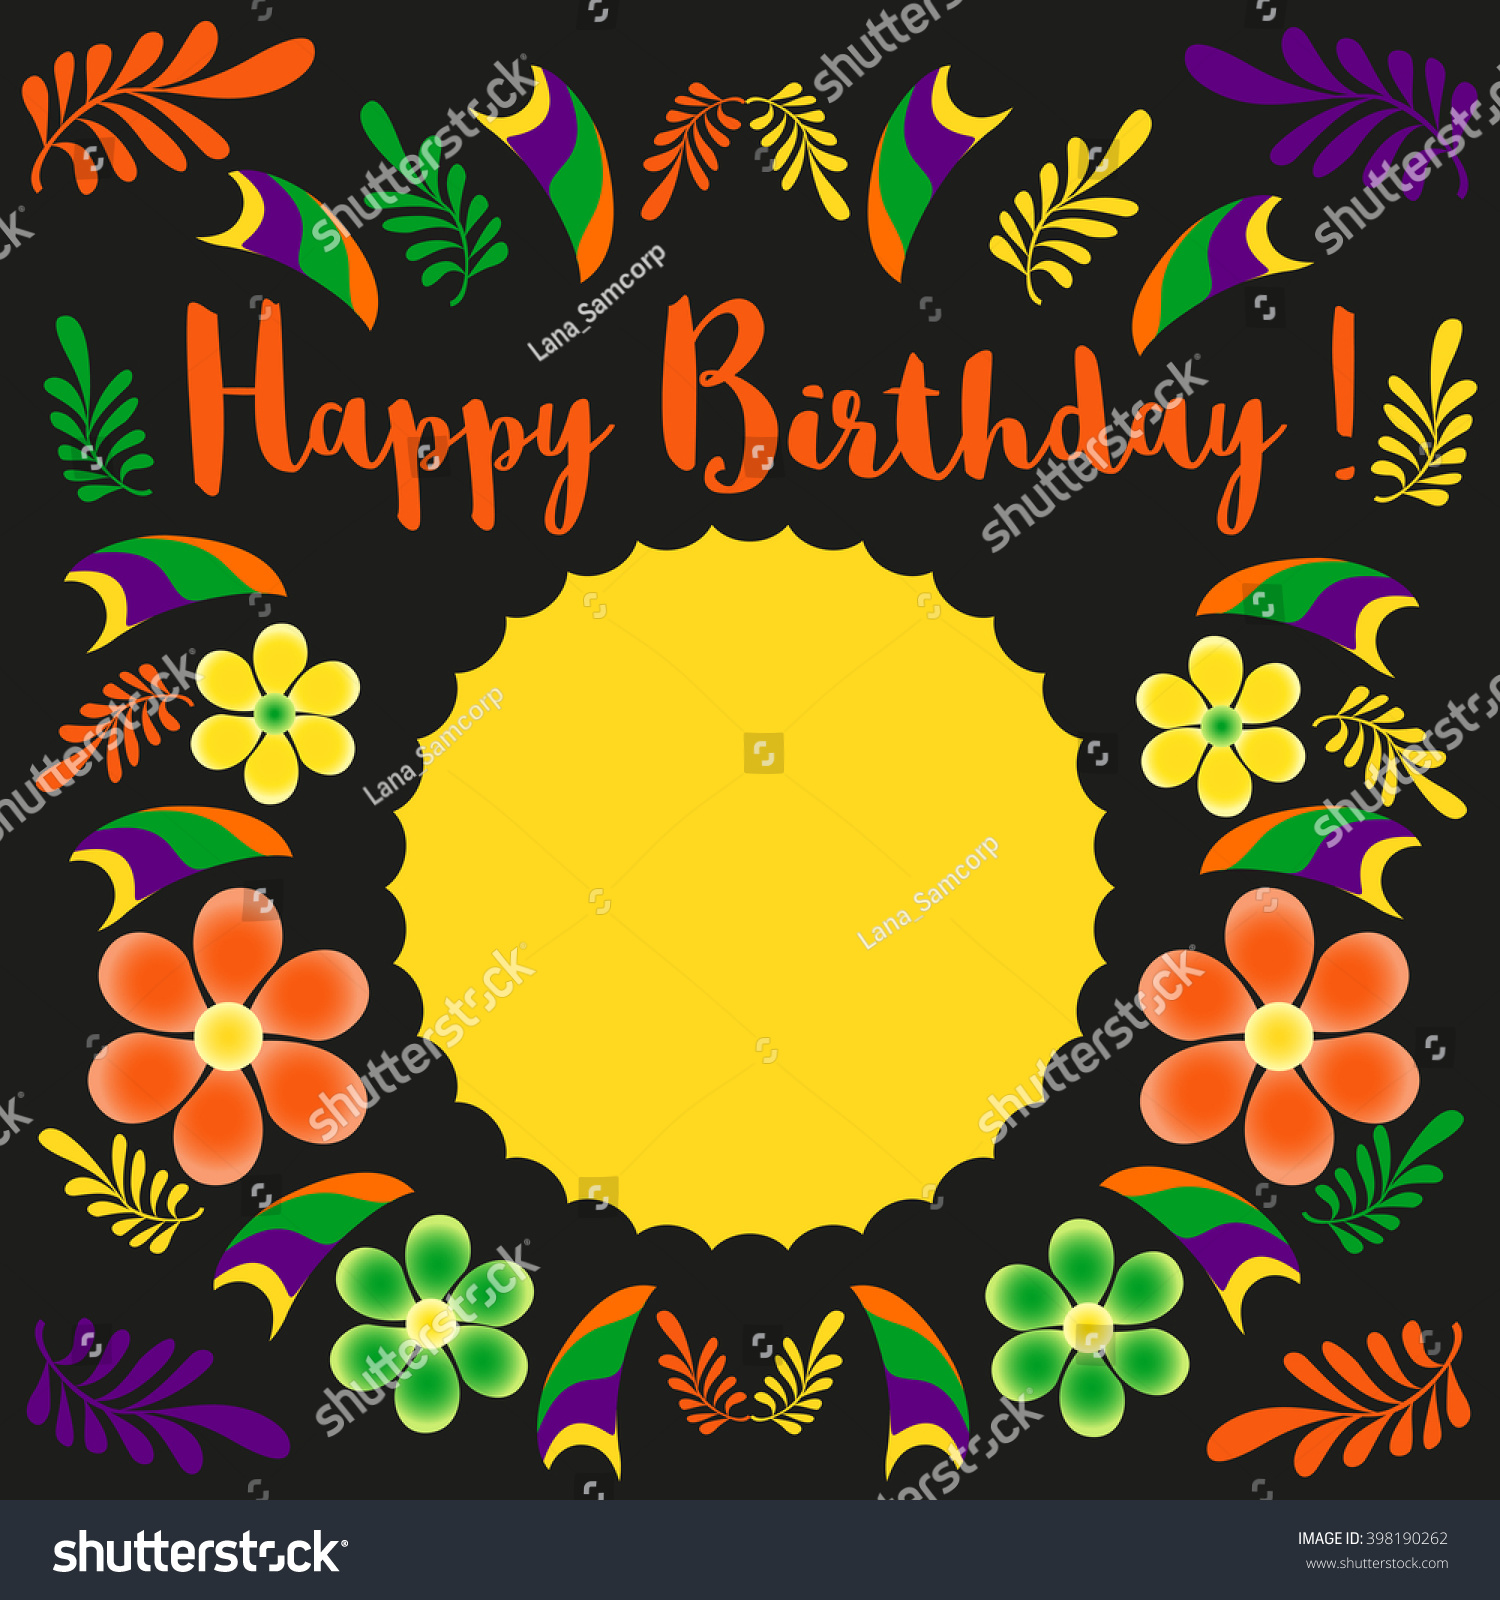 B day poster designs - Happy Birthday Card Template Poster On Party Celebration Blank Space For Greeting Idea